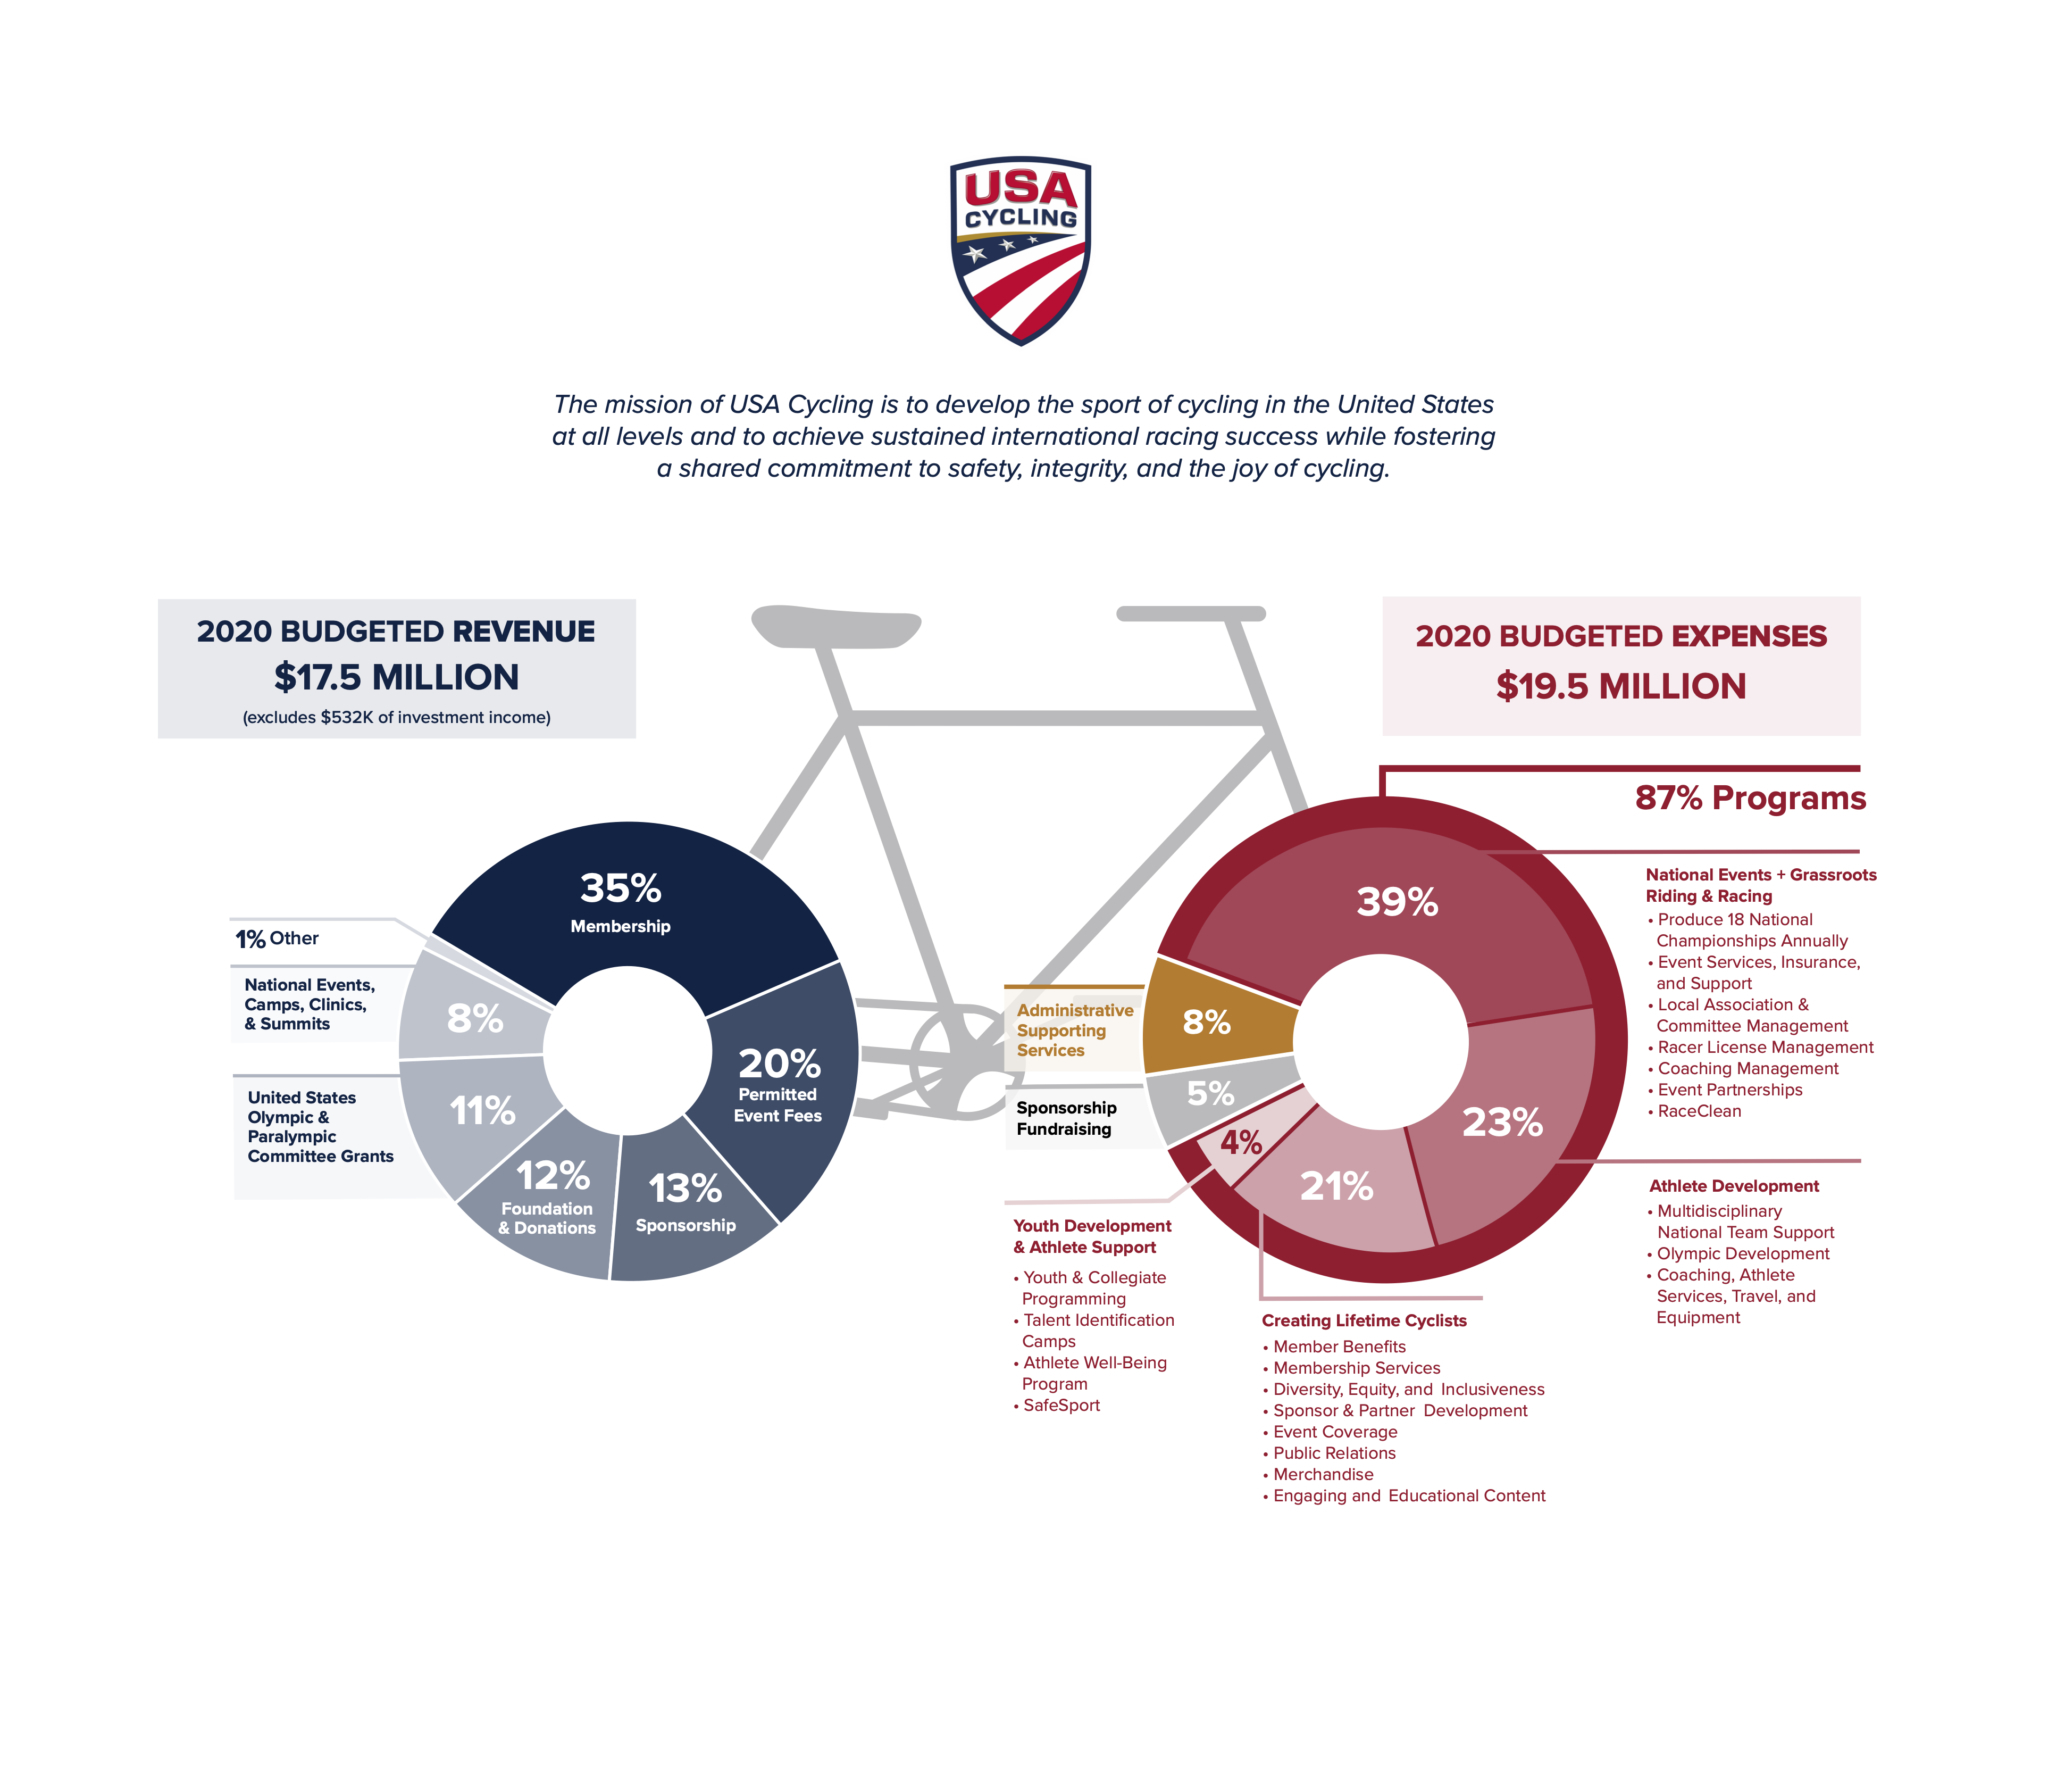 2020 USA Cycling Fiscal Information